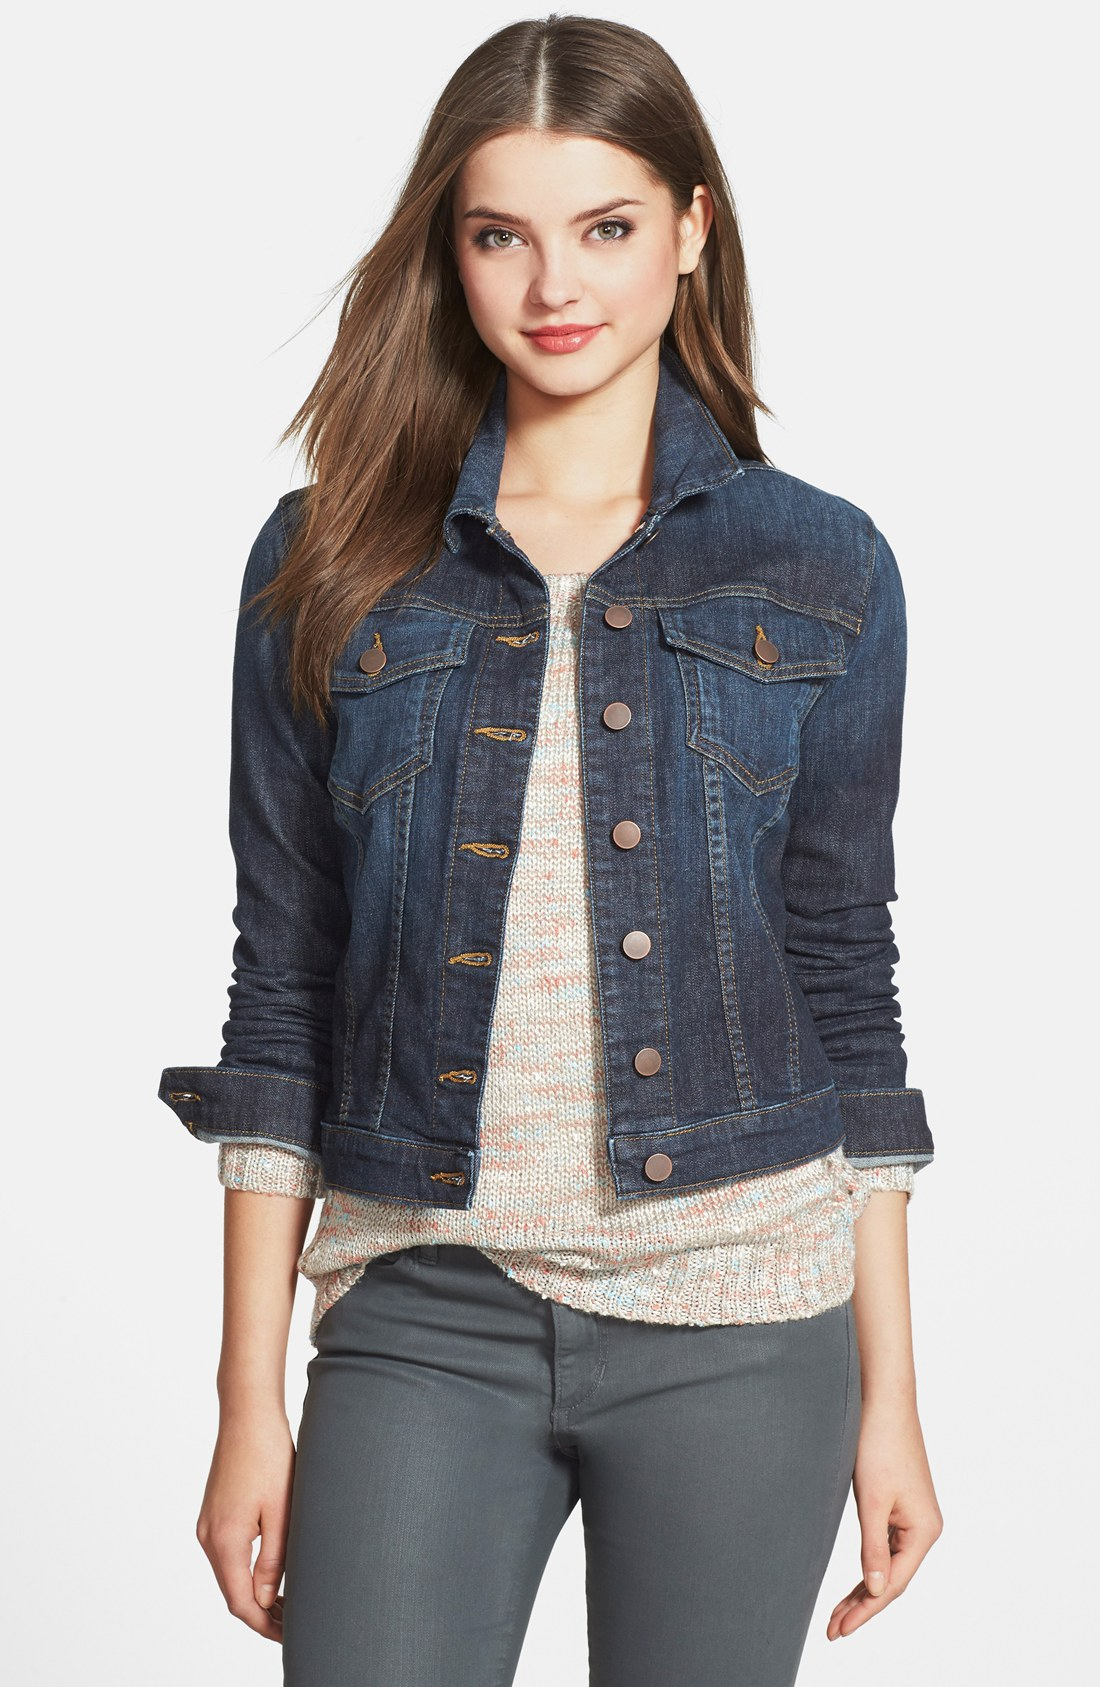 Discover the best Women's Denim Jackets in Best Sellers. Find the top most popular items in Amazon Best Sellers. From The Community. Loose Blue Denim Jackets for Women,Navy Blue Jean Jacket Women,Long Sleeve Womens Denim Jean Jacket out of 5 stars $ - $ #9.